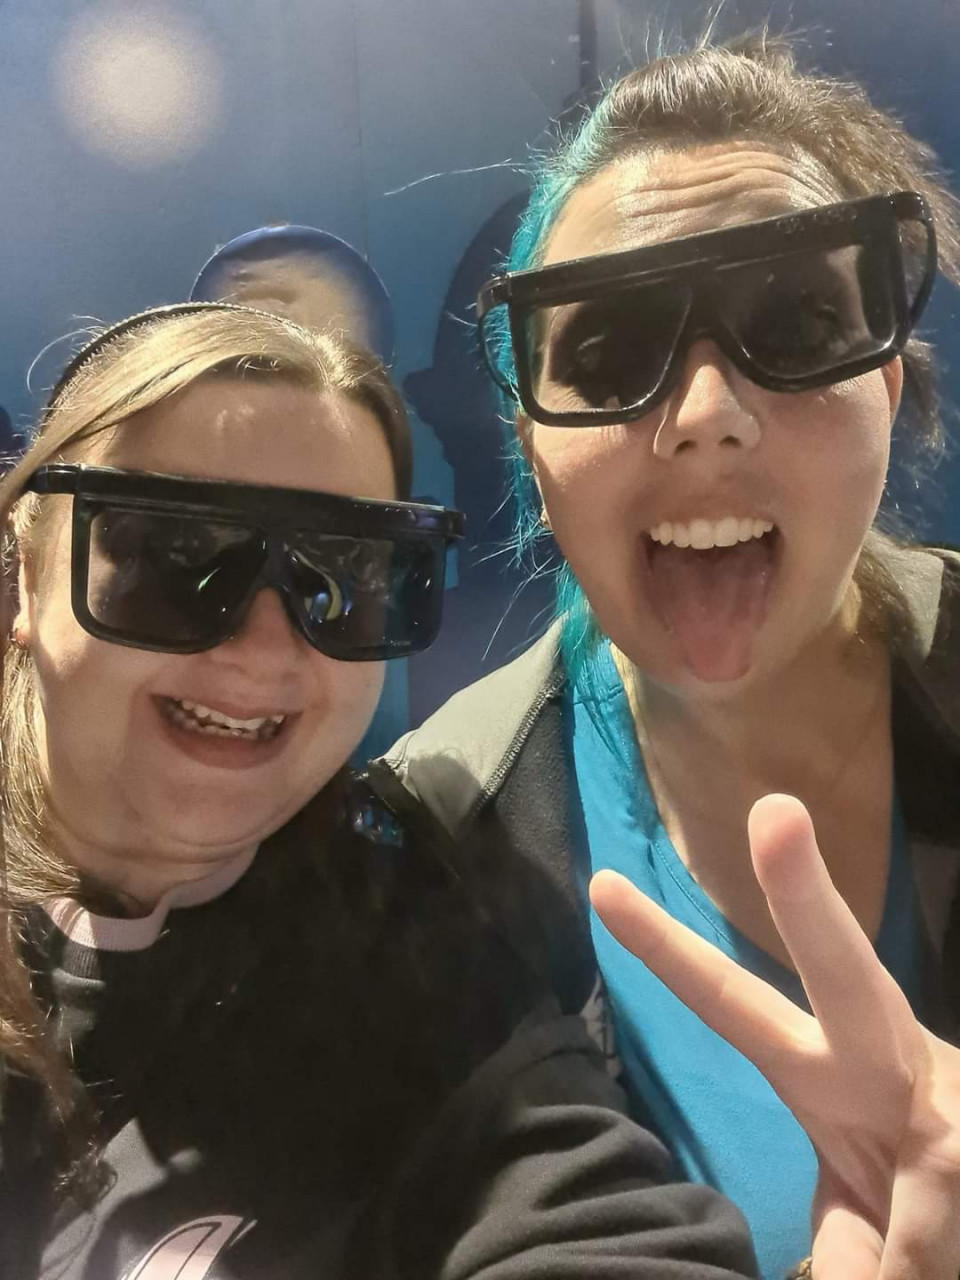 Our super hot 3D glasses for the Blackpool Tower tour. The puffs of air definitely didn't scare me, twice.